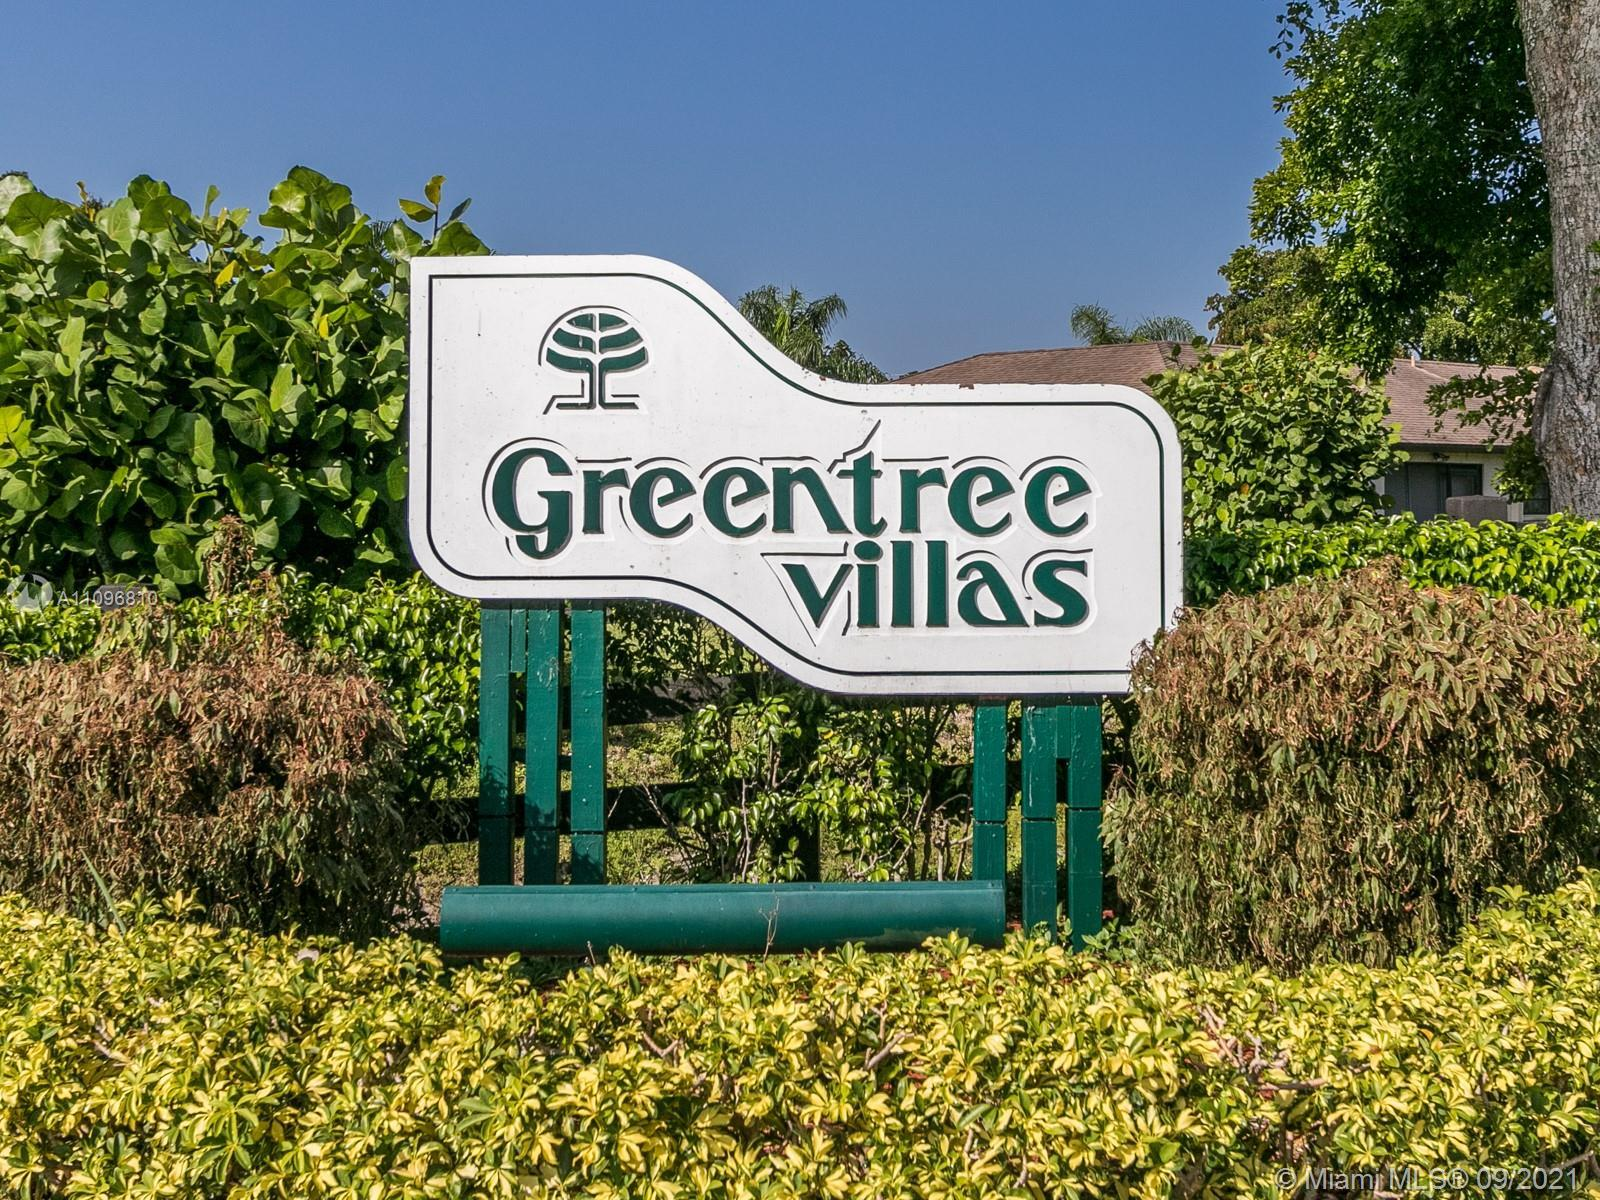 Come and view this spacious 1,400 sq ft villa in the desirable 55+ community of Greentree Villas.  T